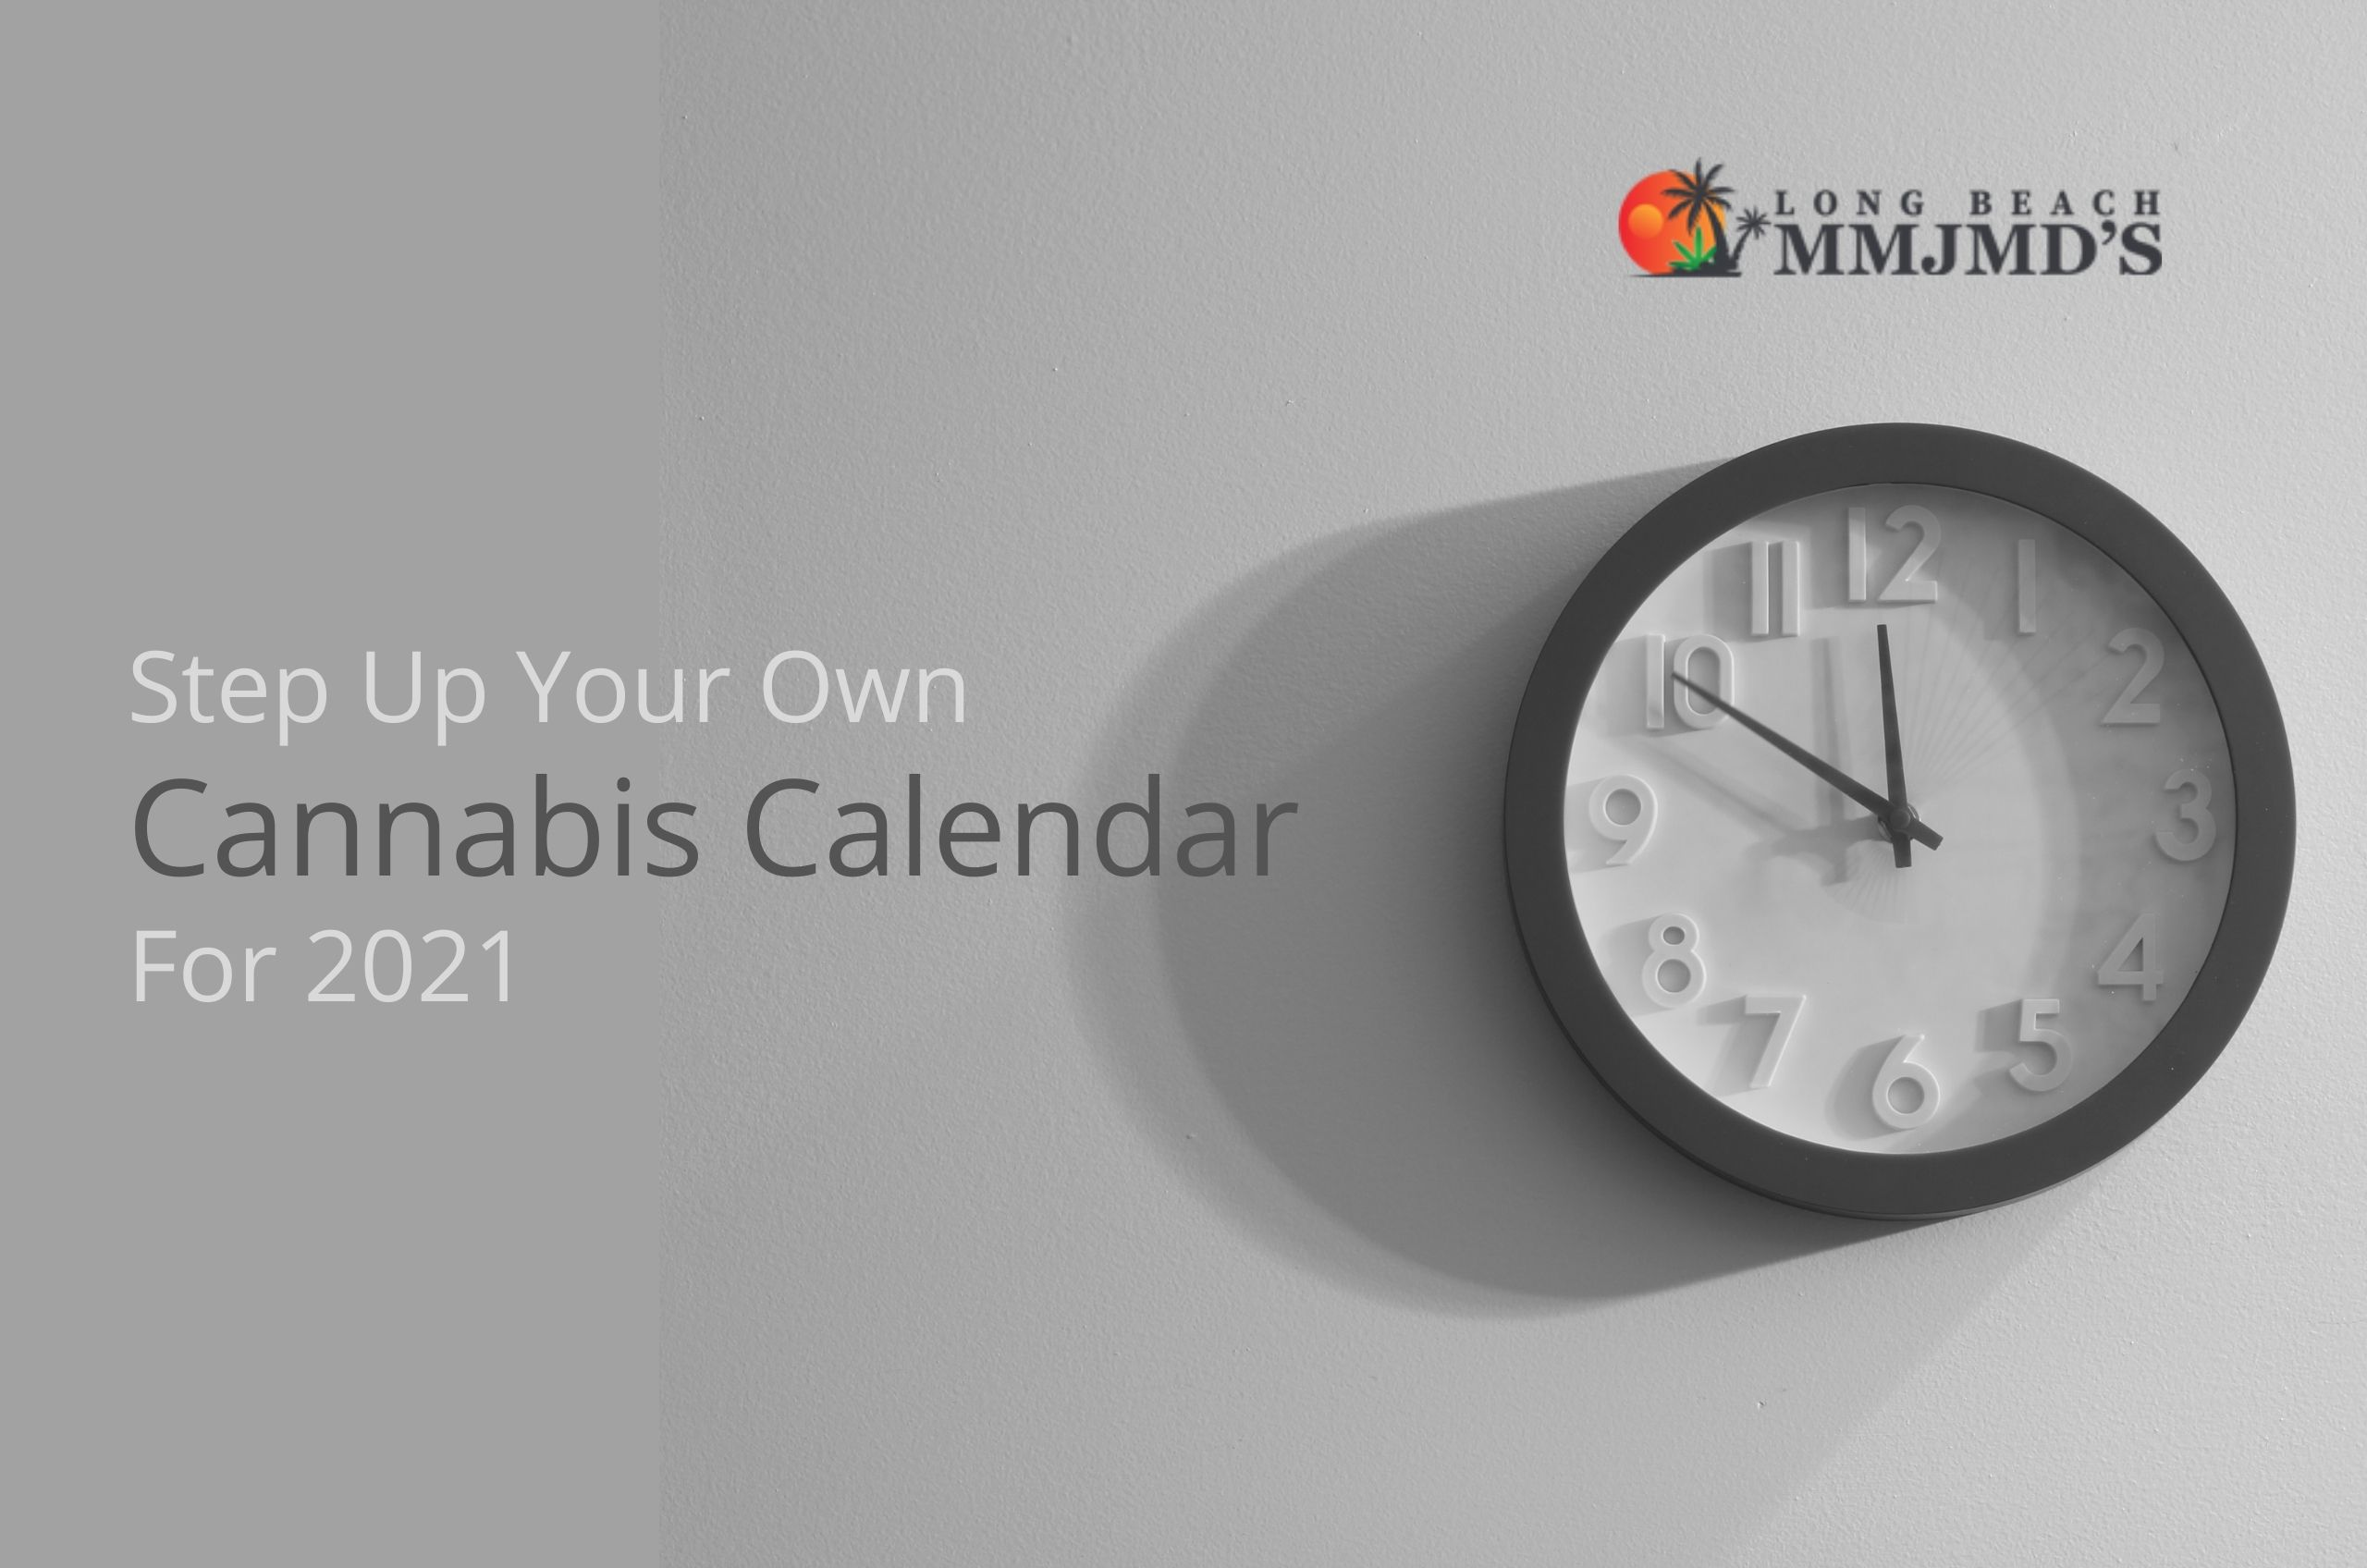 here is the ultimate calendar building guide for scheduling personal cannabis growth